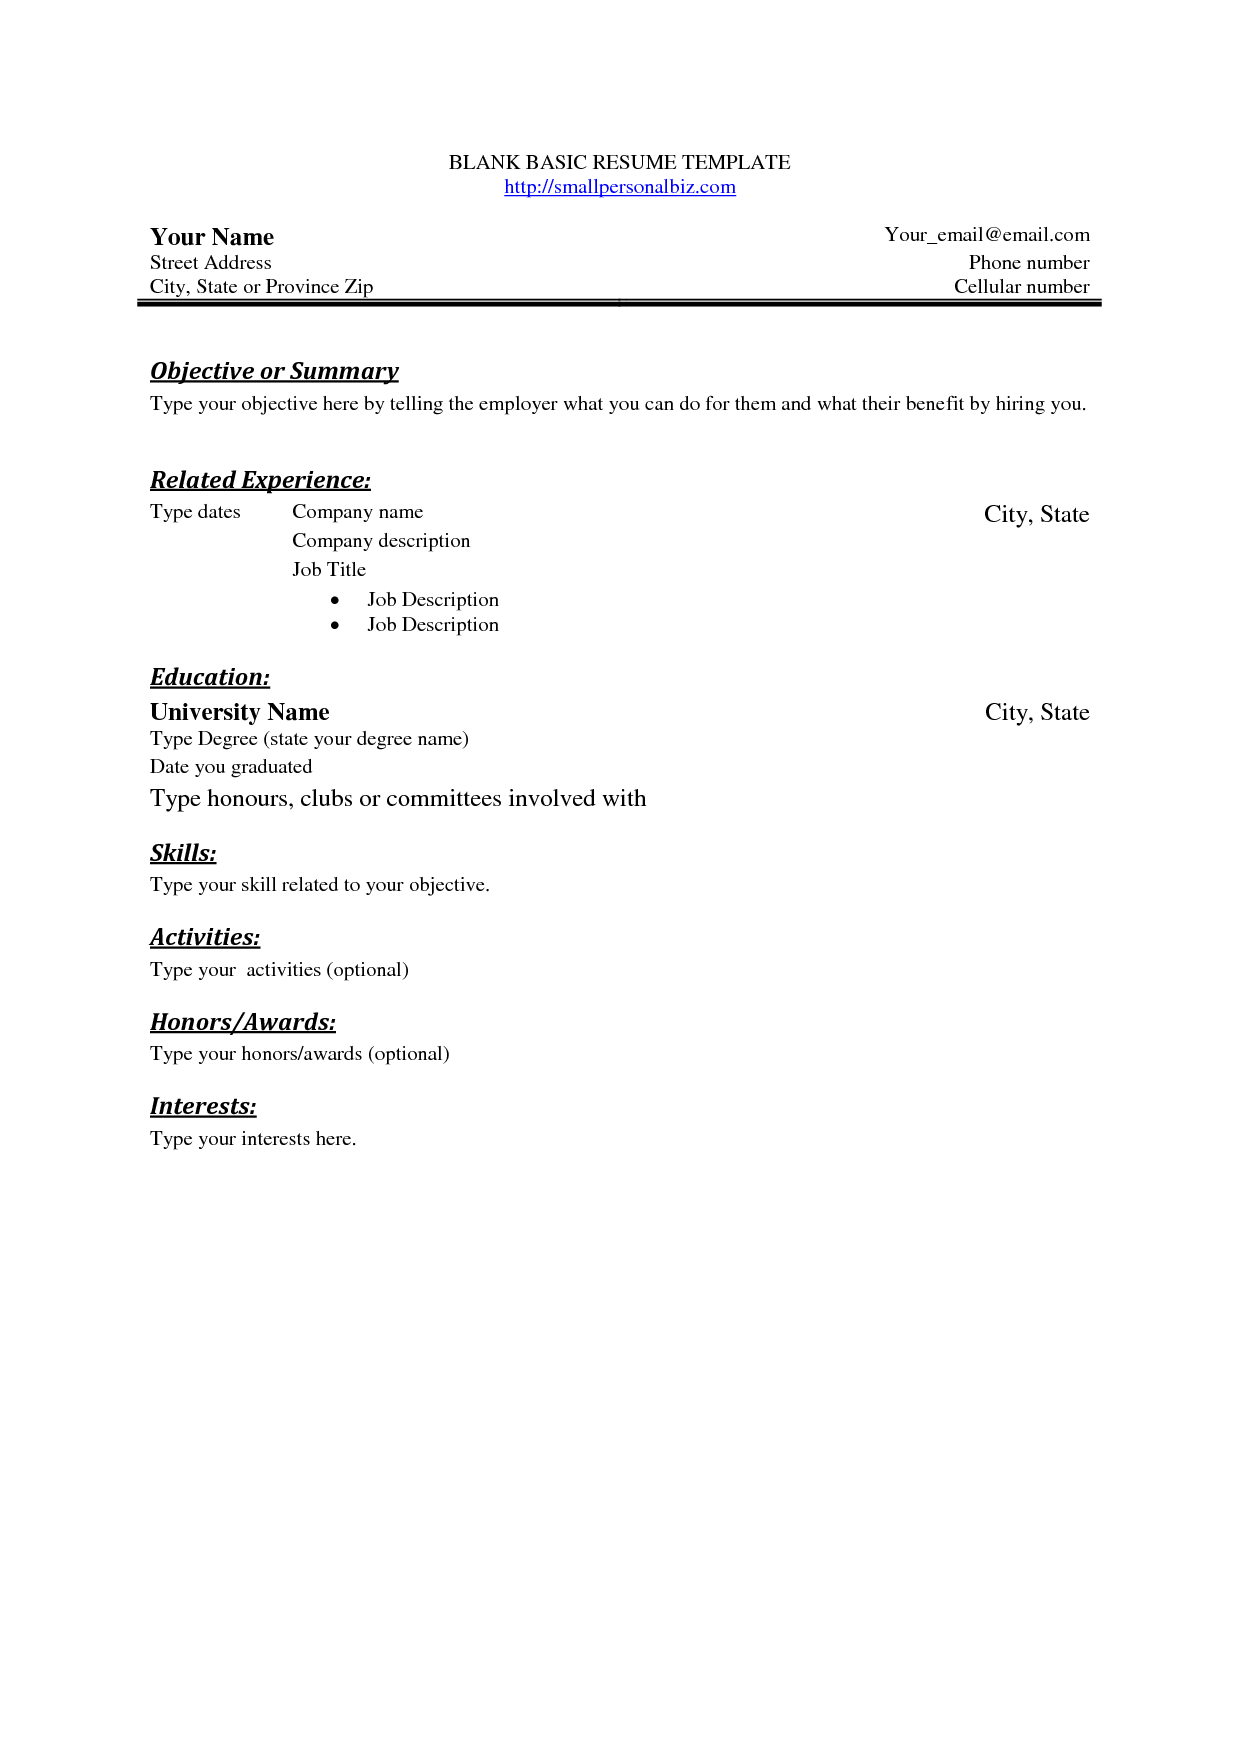 Basic Resume Template Blank